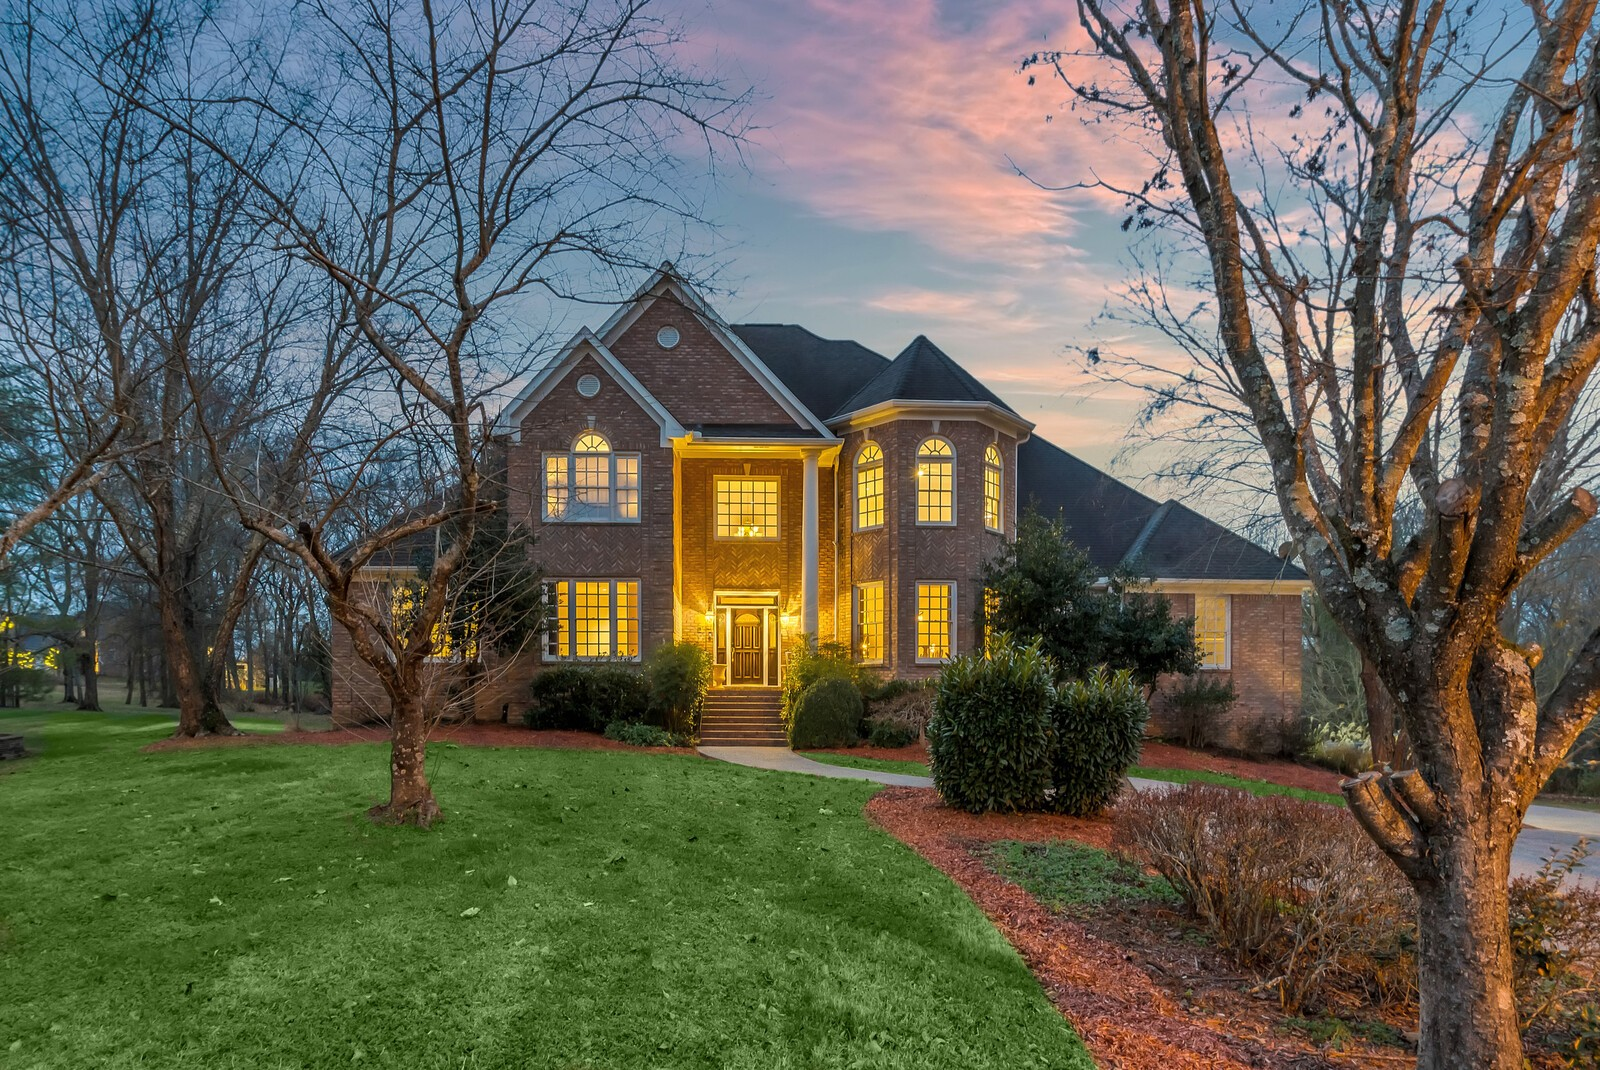 Beautiful executive home in prestigious Estates of BonBrook. Private 1 acre tree-lined lot on cul-de-sac, featuring over 7100 sq ft of living space on 3 levels. Main level opens to amazing deck w/ outdoor kitchen - overlooks resort style pool & fireplace. Master on main, 3 beds up w/ en suite baths. Walk out basement with separate entrance, bedroom & full bath. Updated polished concrete flooring & shiplap, sauna, living room & gym! Great as guest quarters/in-law suite or for entertaining!